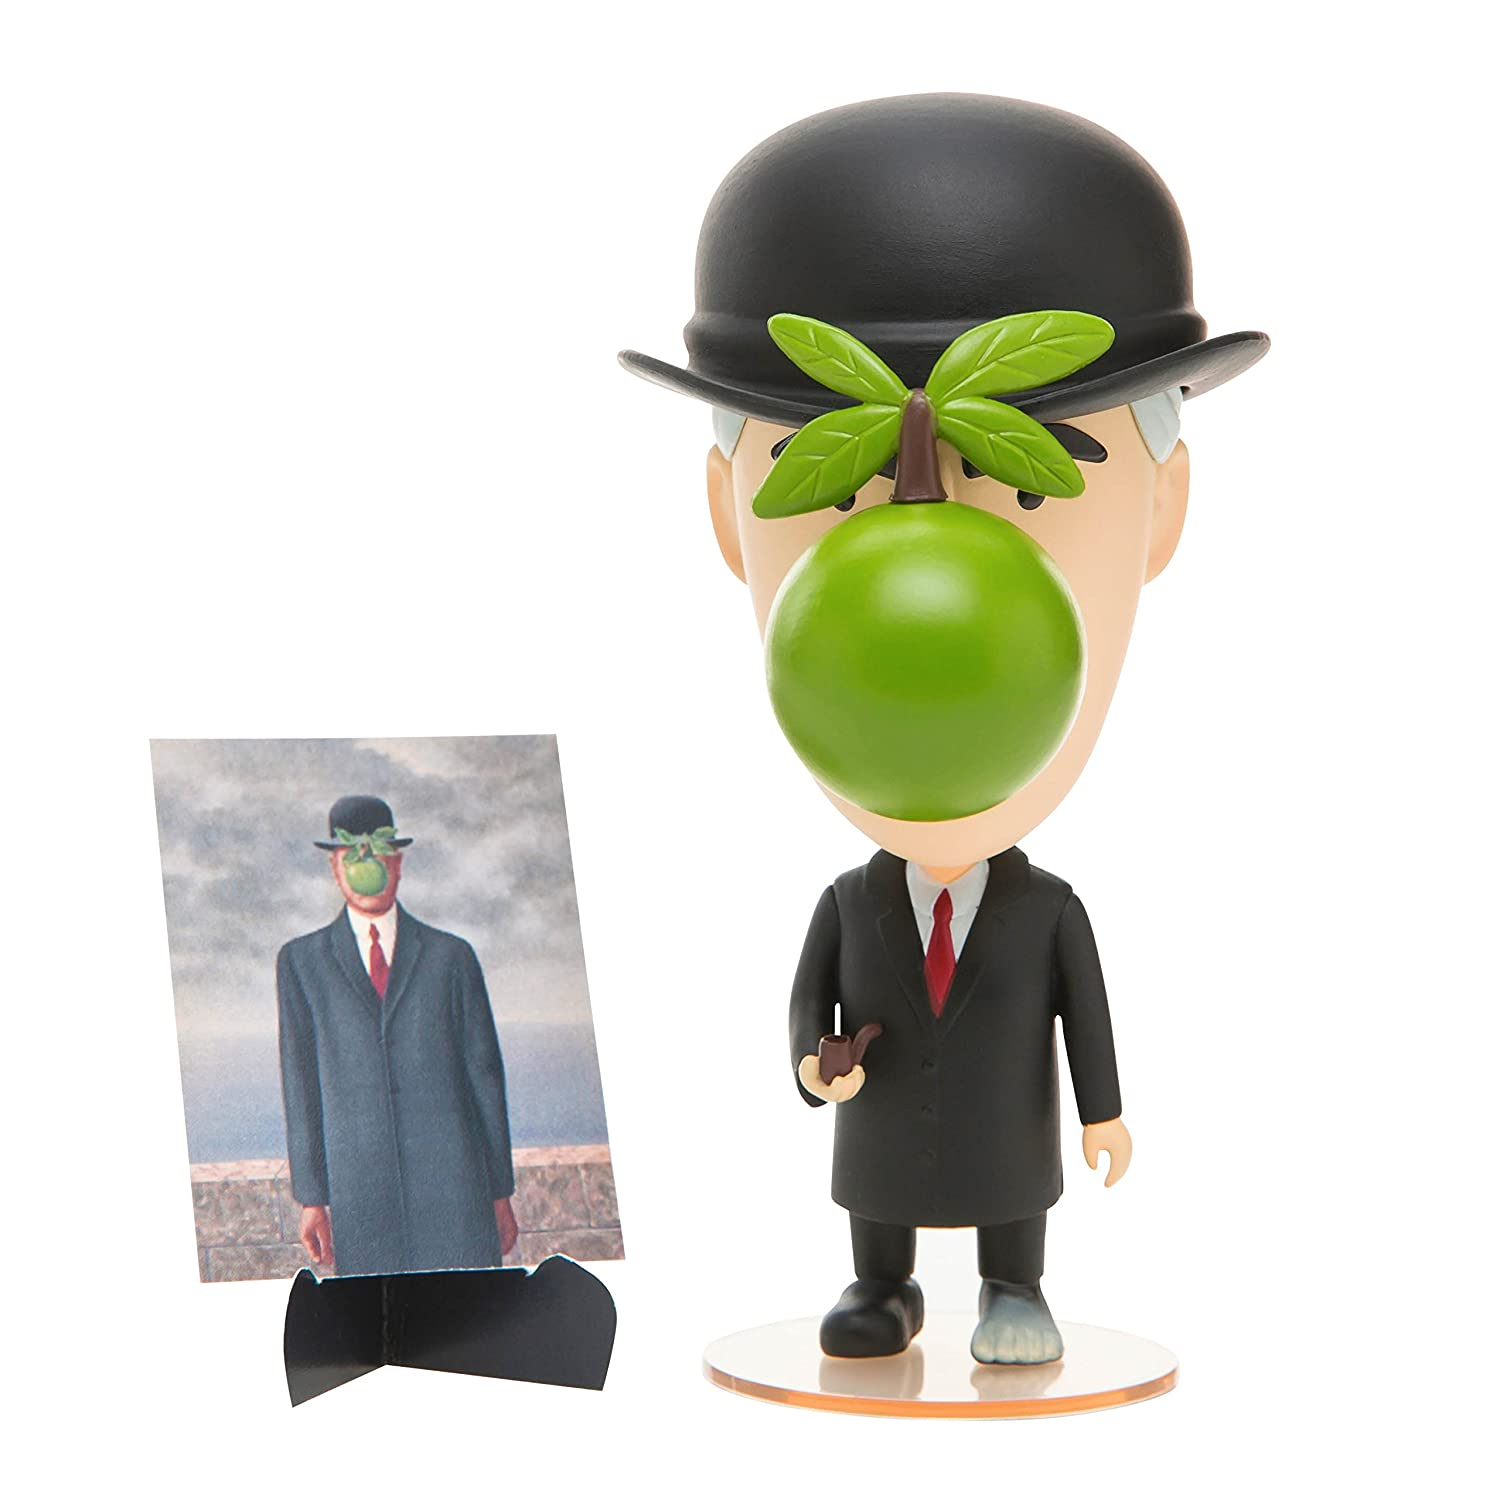 Rene Magritte Surrealist Action Figure Transforms Into The Son of Man Today Is Art Day